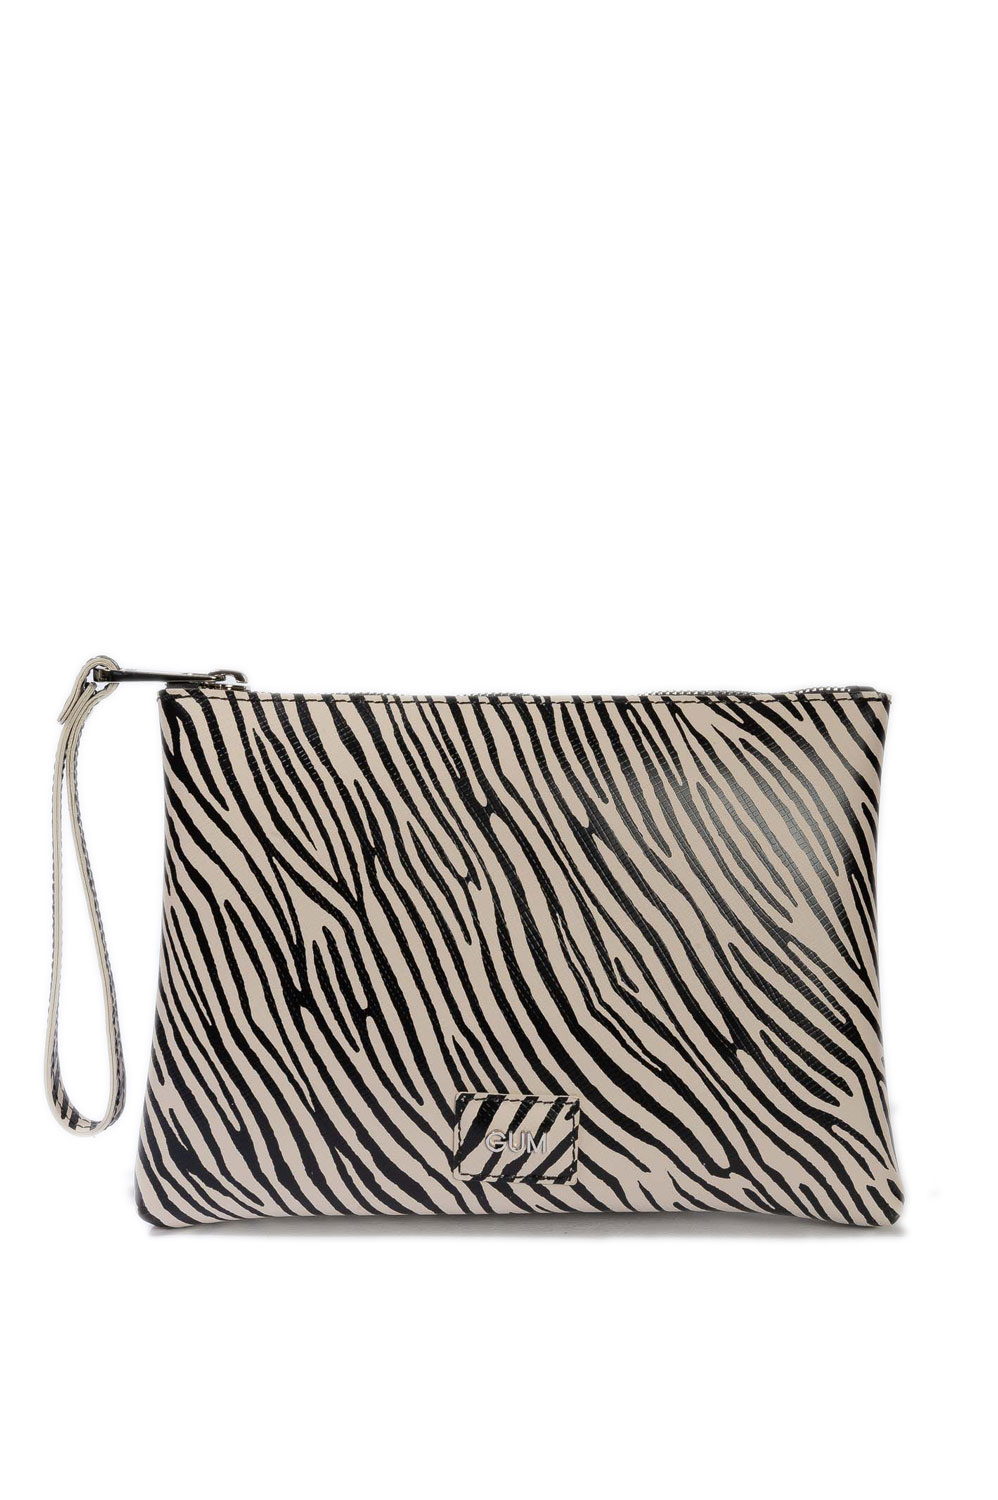 Pochette Gum Re Build Mini Zebra Nero